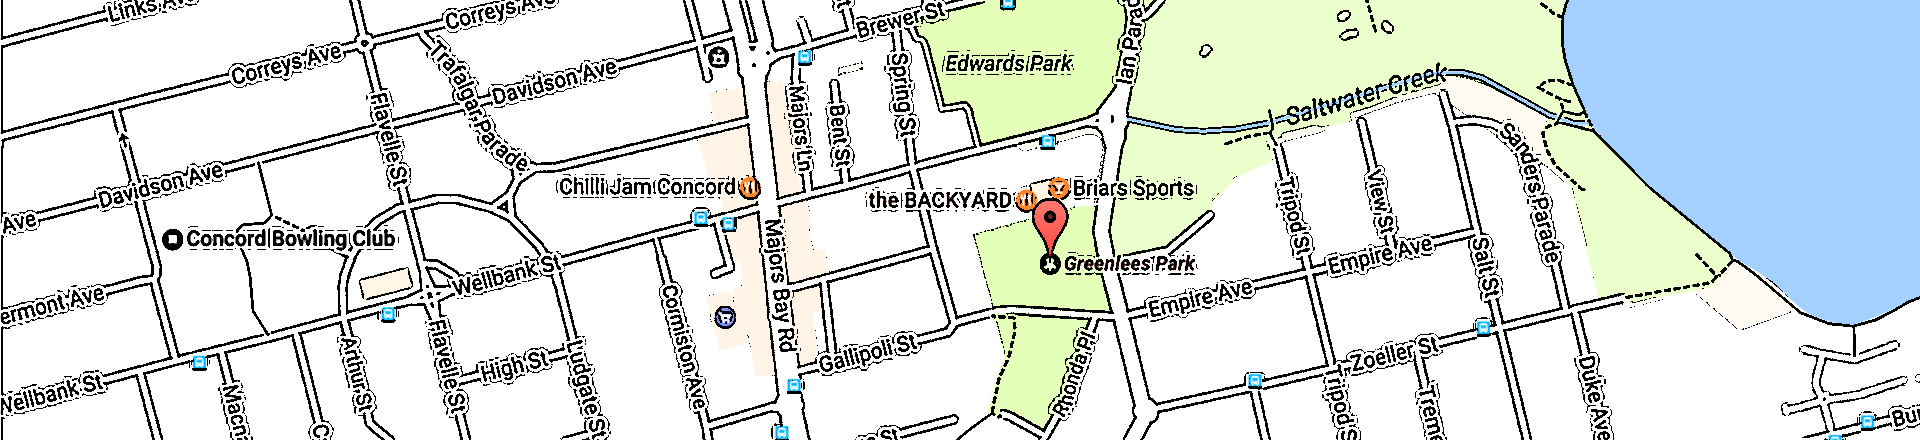 Filtered map of Briars Greenlees sports club